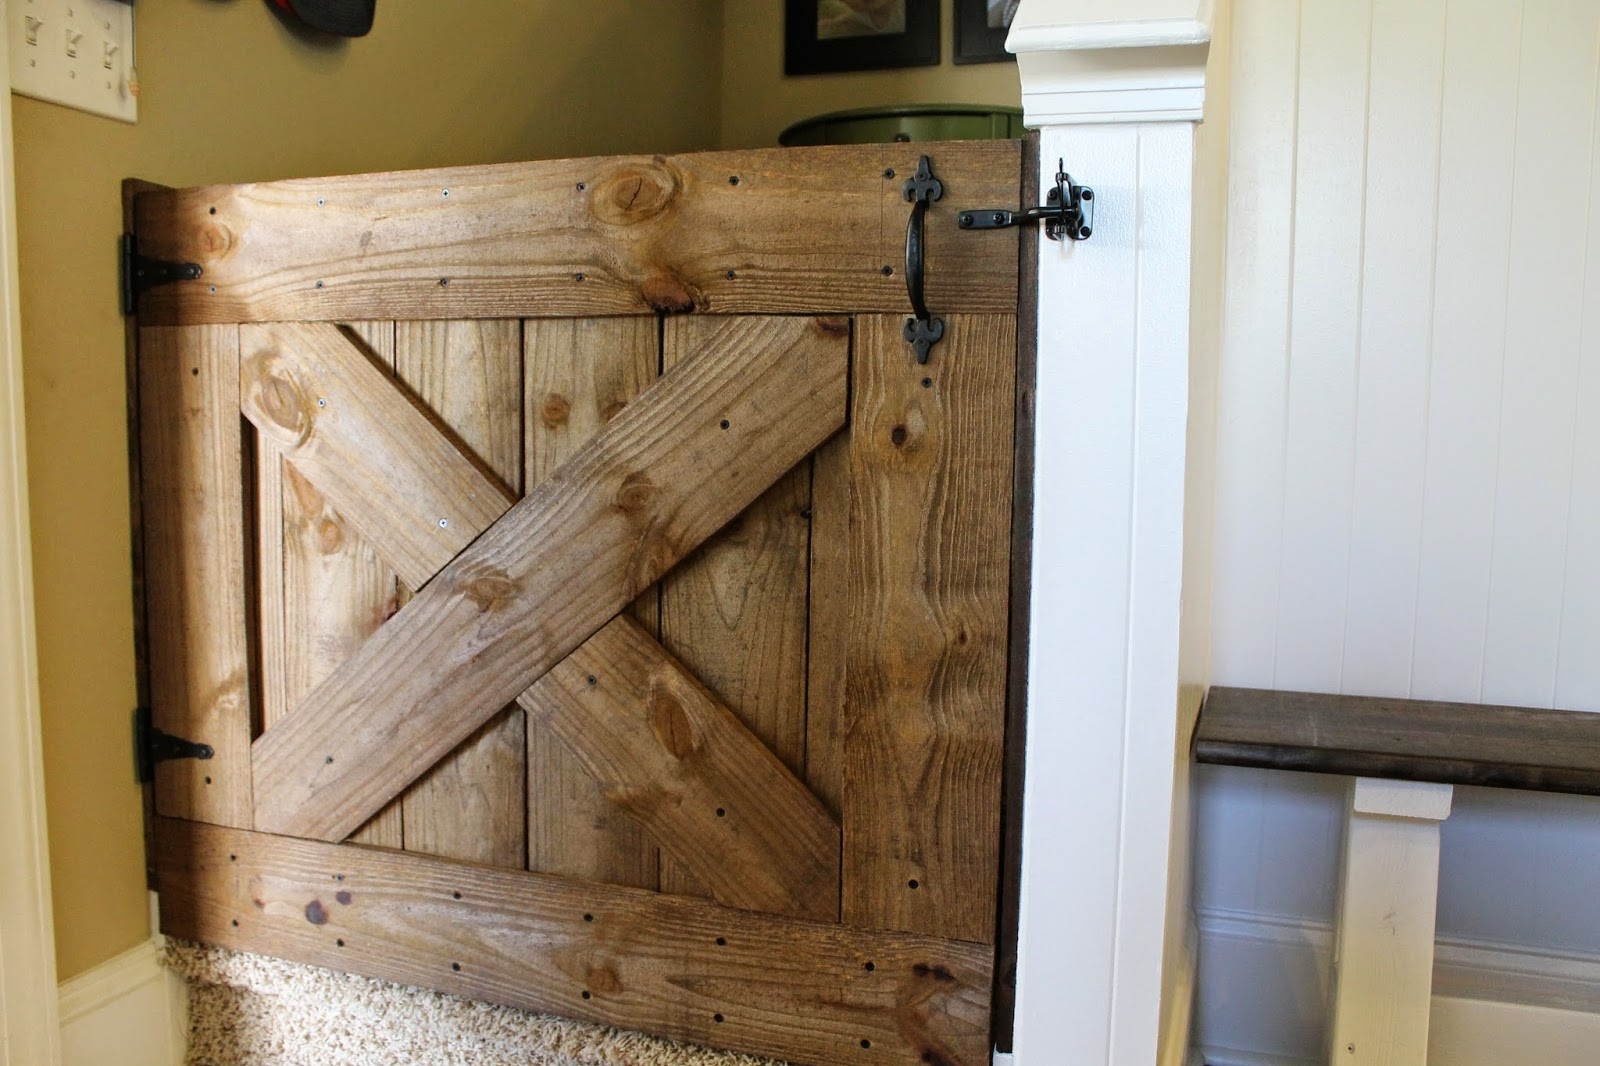 Barn door kitchen gate